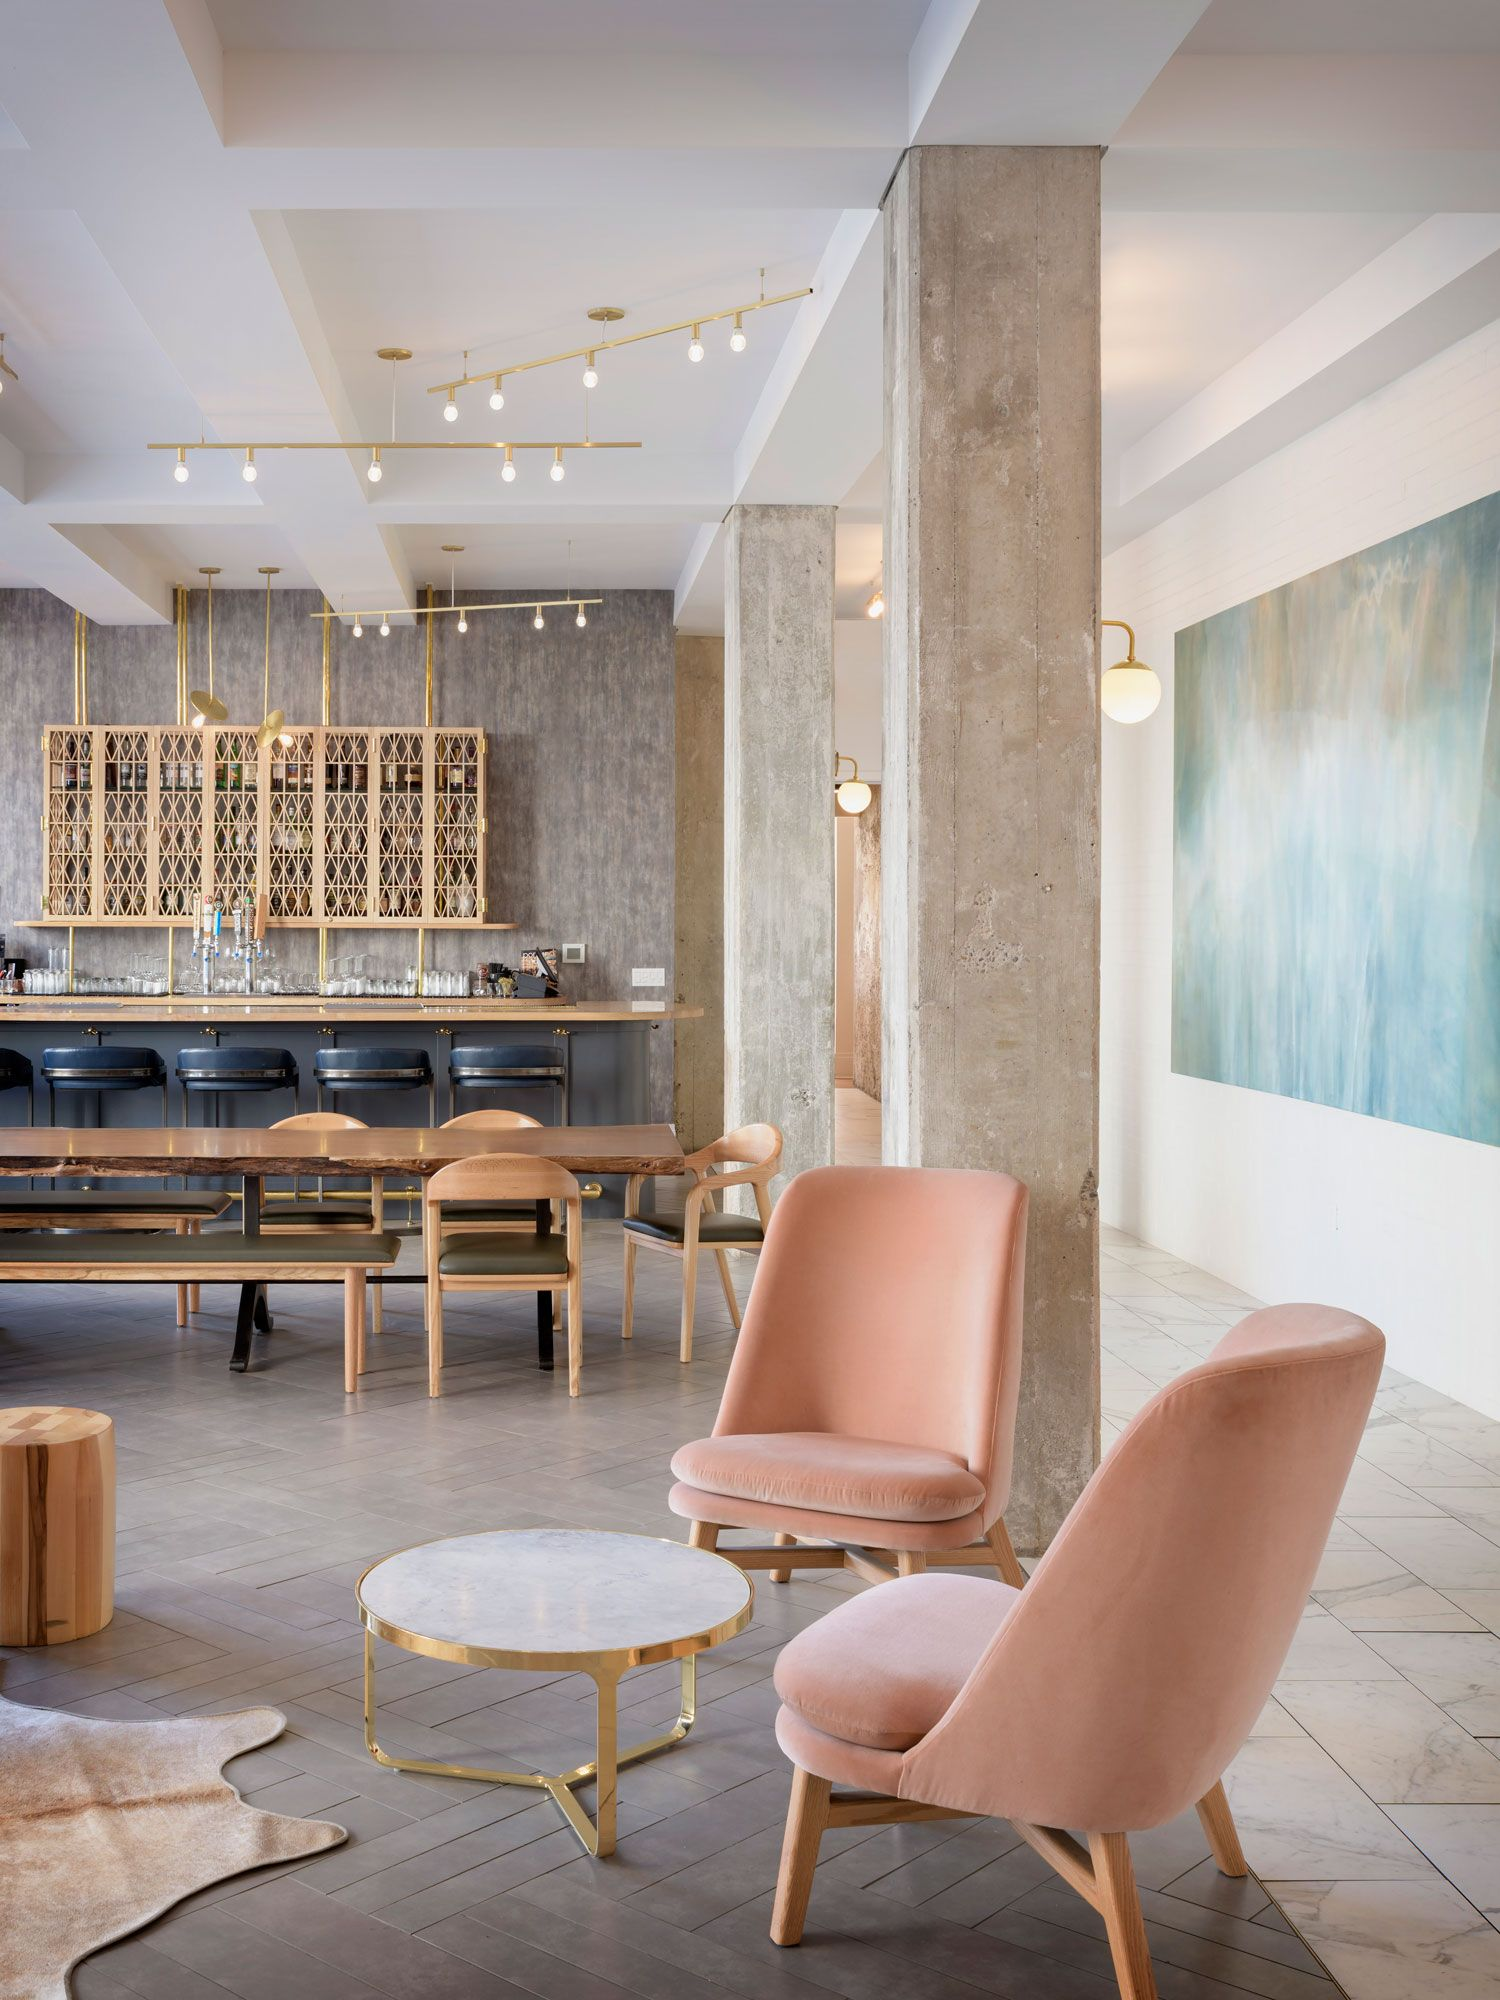 Hotel Rooms Interior Design: Inside Hi-Lo Luxury Hotel Lobby By Jessica Helgerson